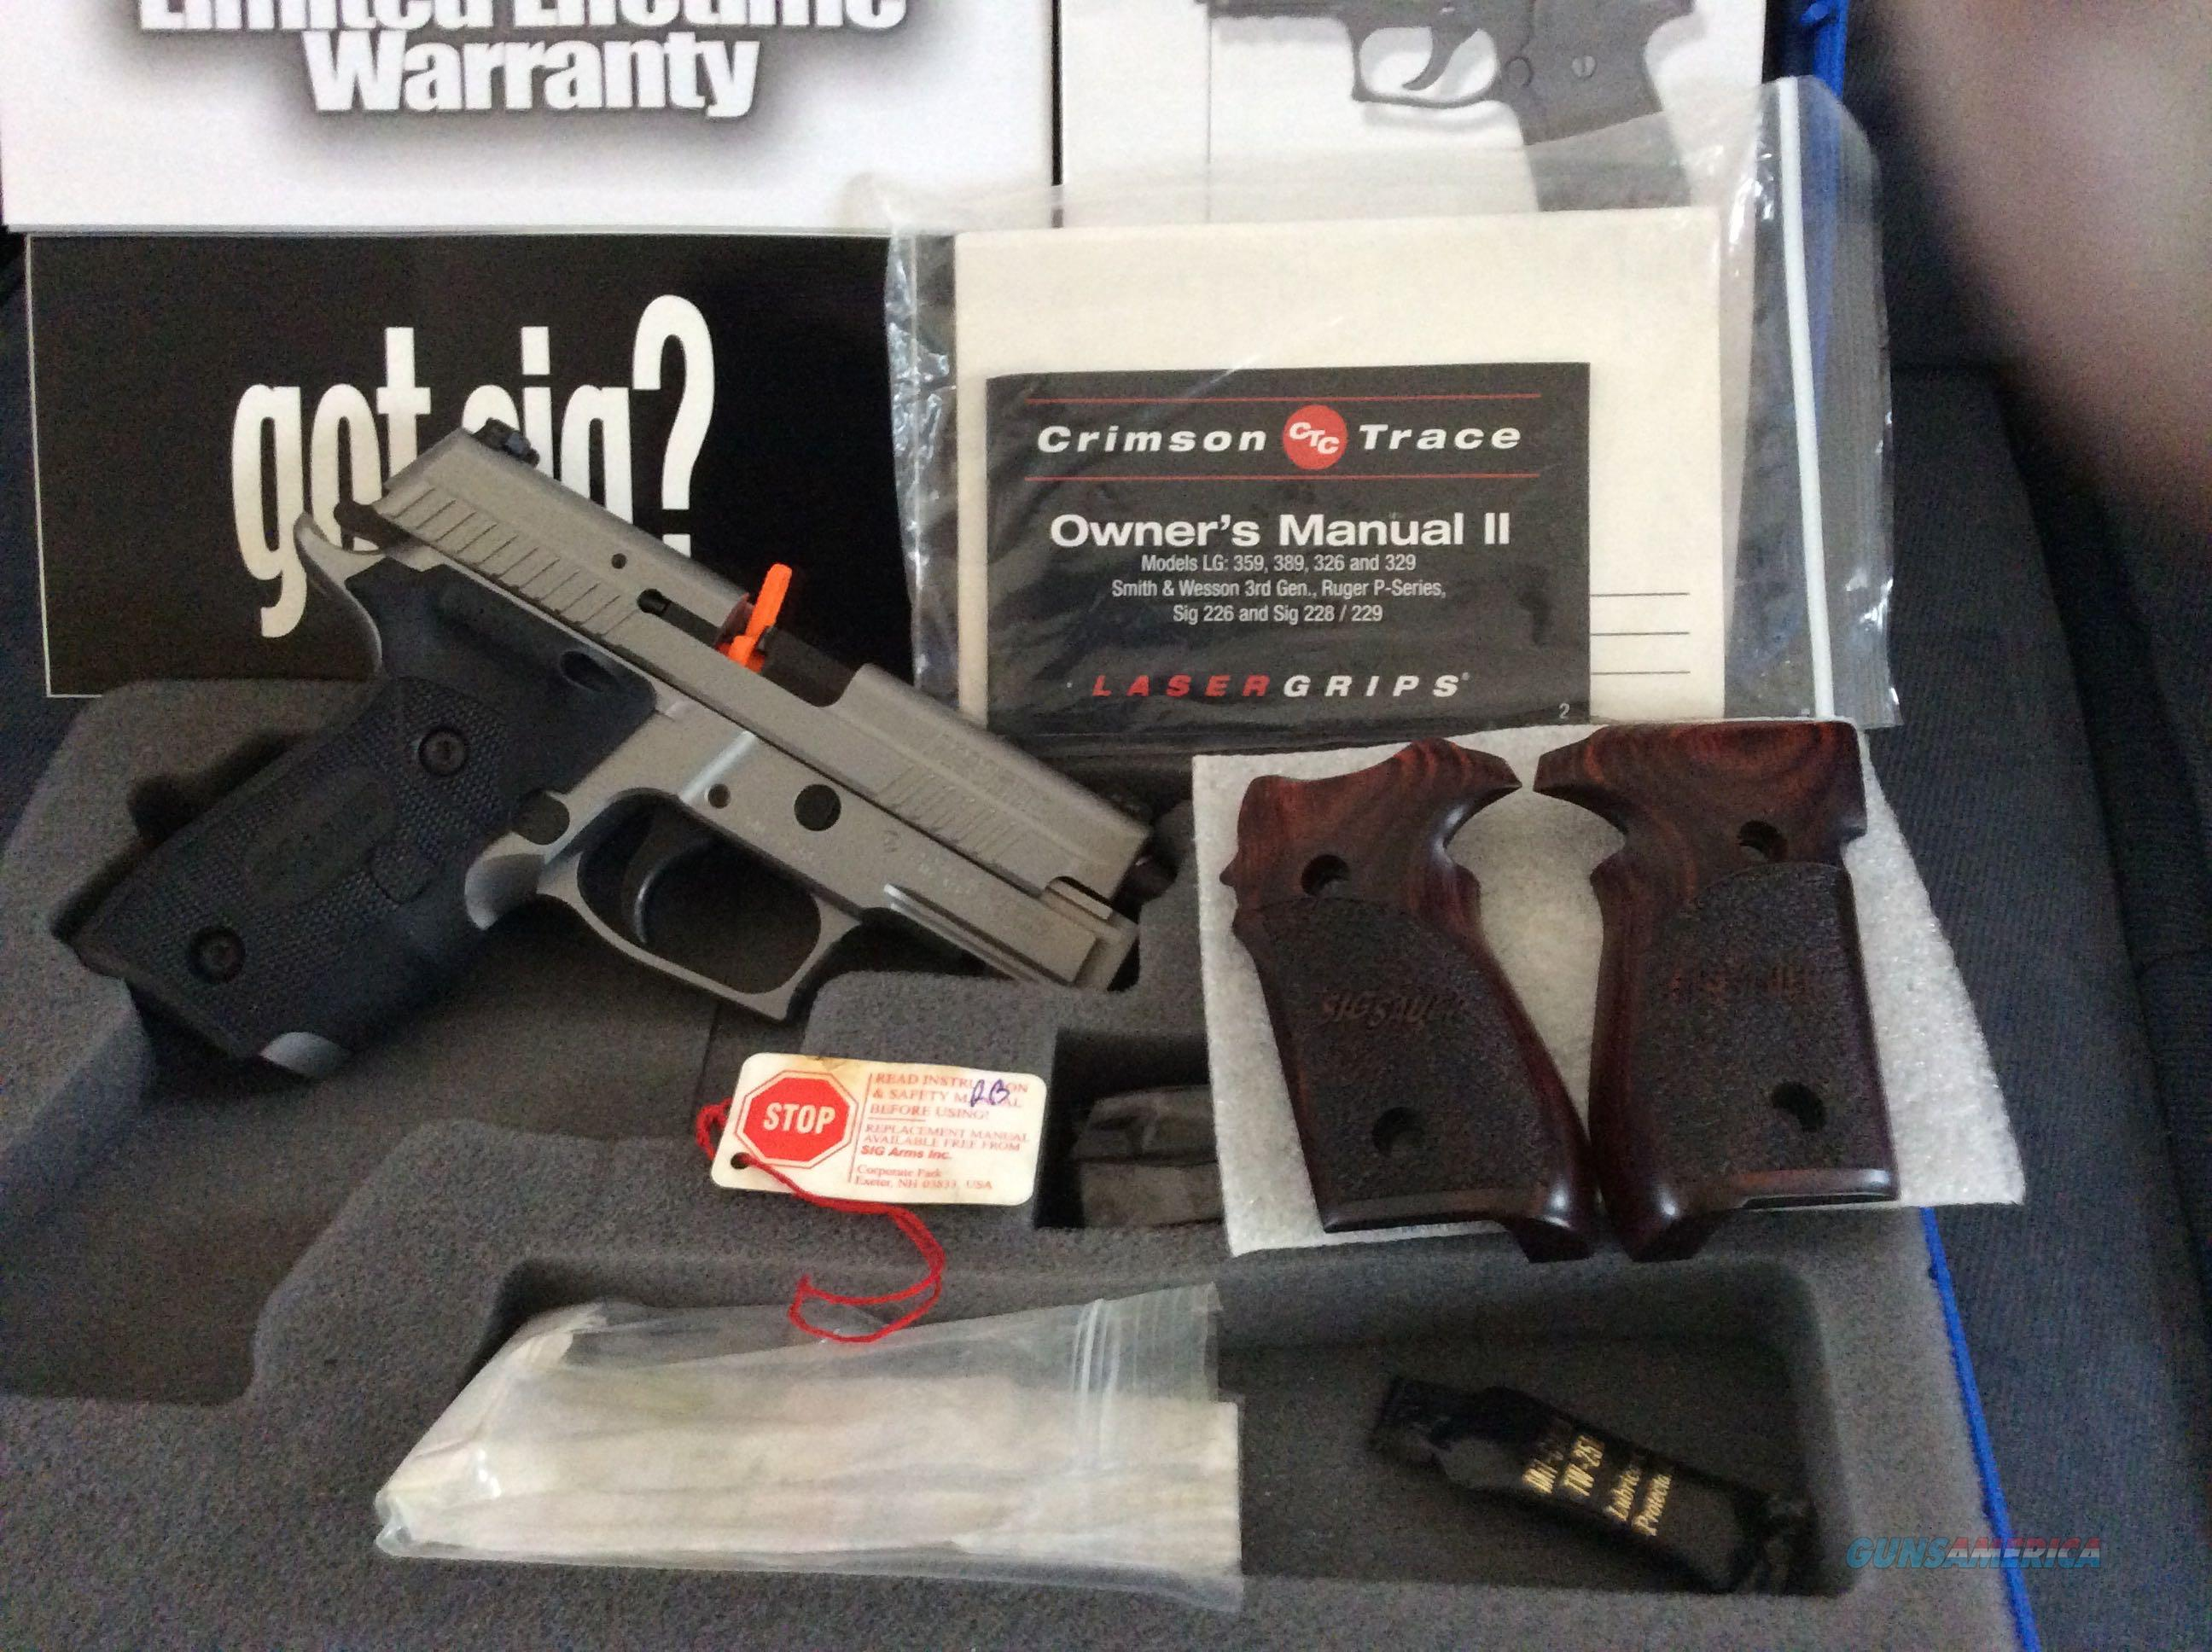 SIG P229 STAINLESS ELITE W/ SIG LOGO CT GRIPS. ROSEWOOD GRIPS INCLUDED.  Guns > Pistols > Sig - Sauer/Sigarms Pistols > P229